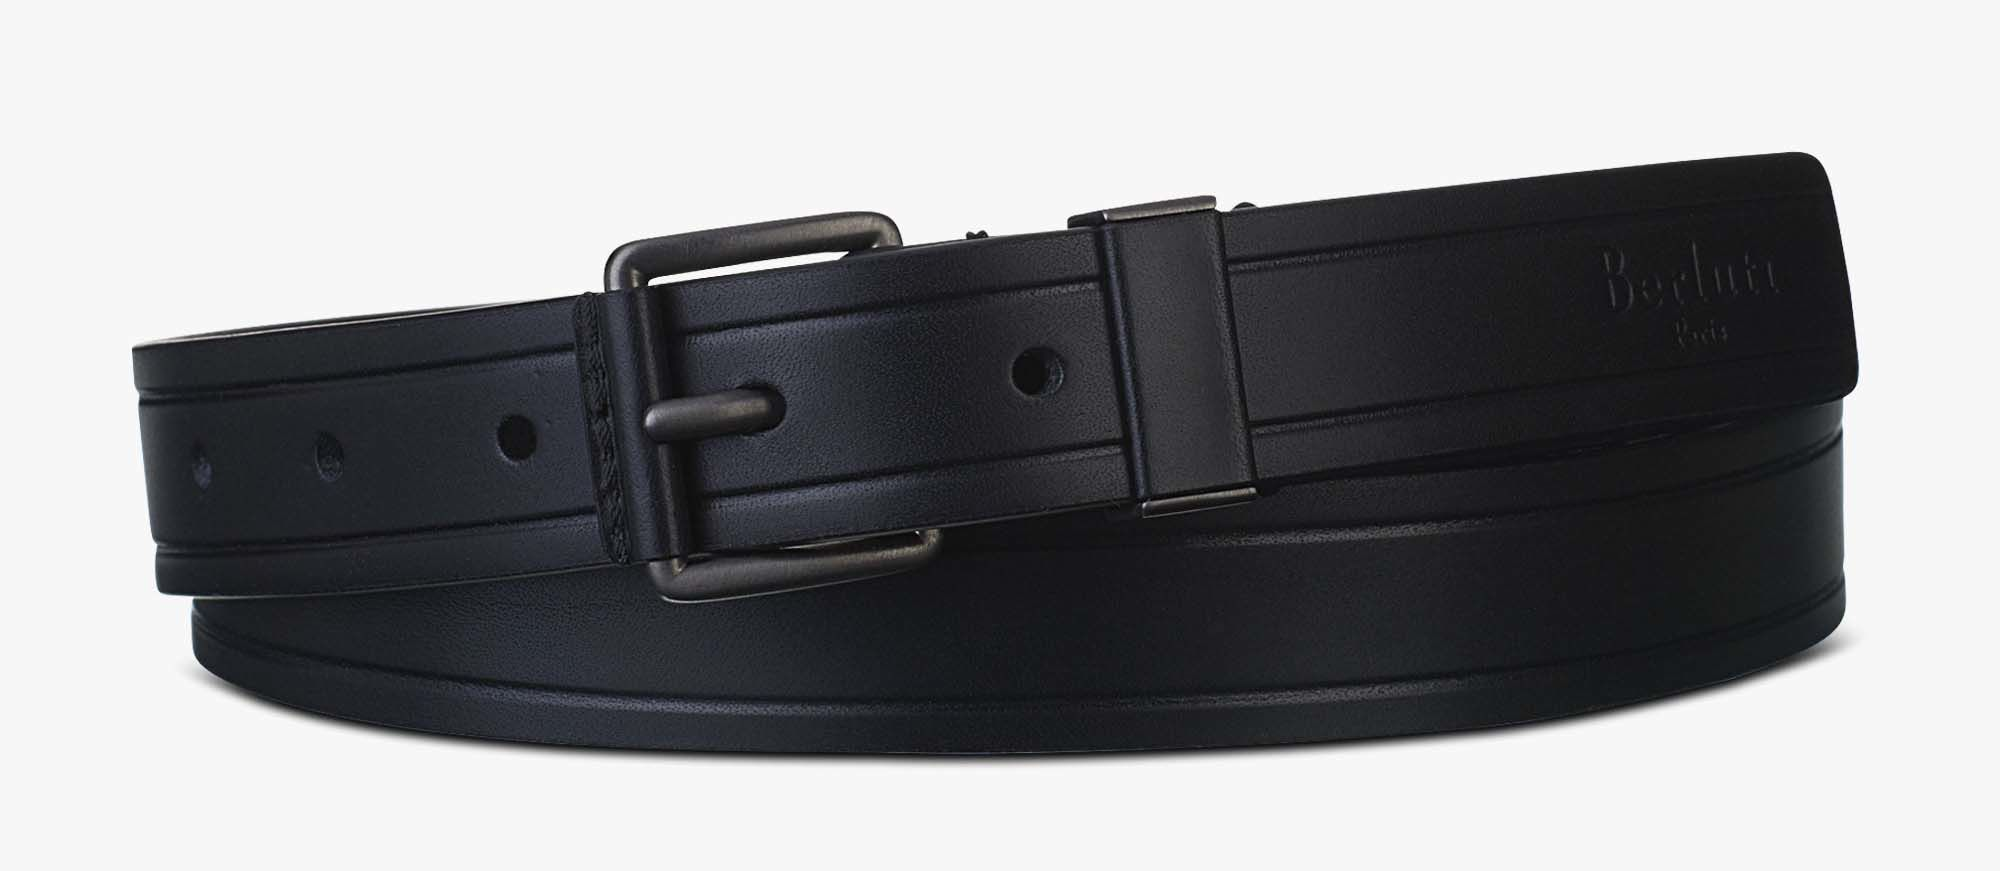 送料関税込!2018AW新作 Berluti Sniper Leather Belt - 25mm